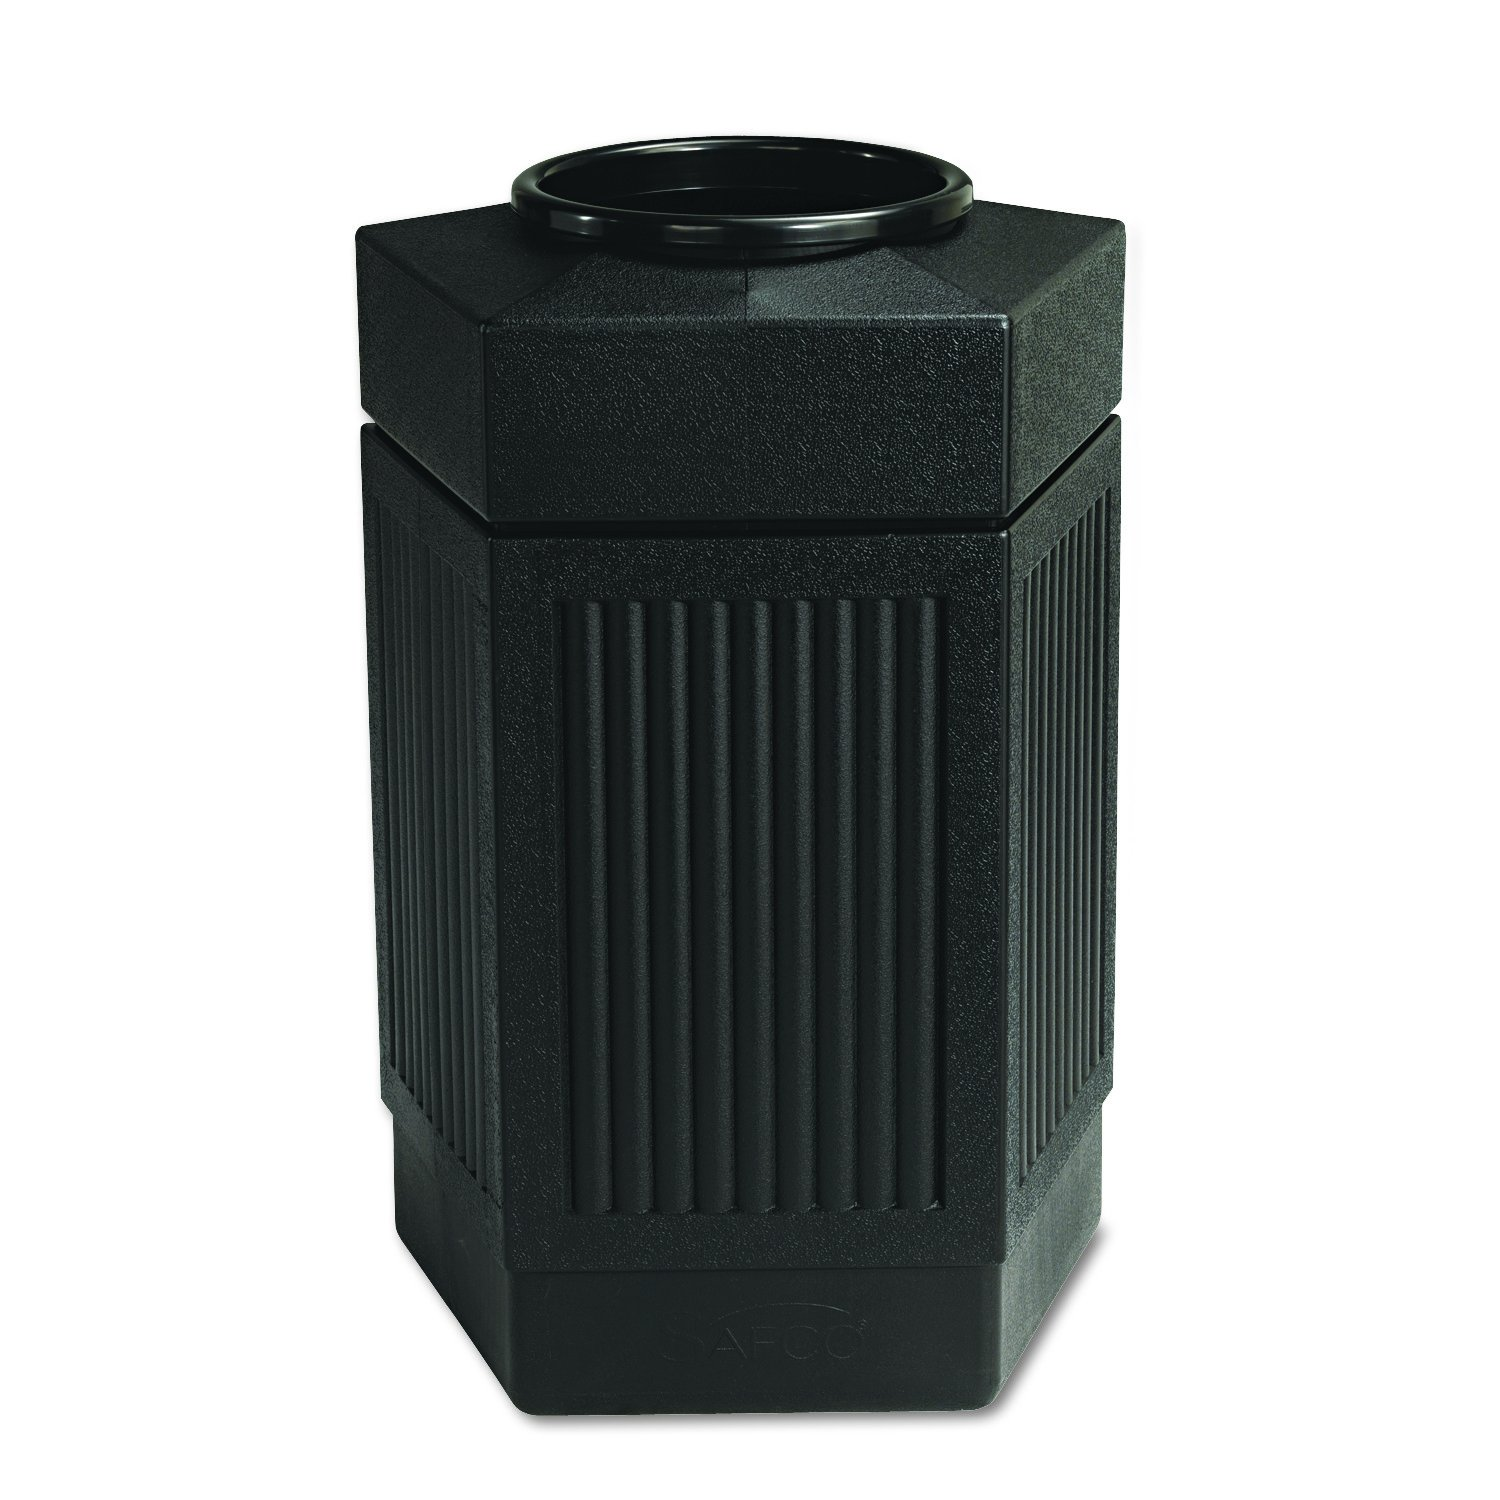 Safco Products Canmeleon Outdoor/Indoor Open Top Pentagon Trash Can 9485BL, Black, Five Fluted Panels, 30-Gallon Capacity